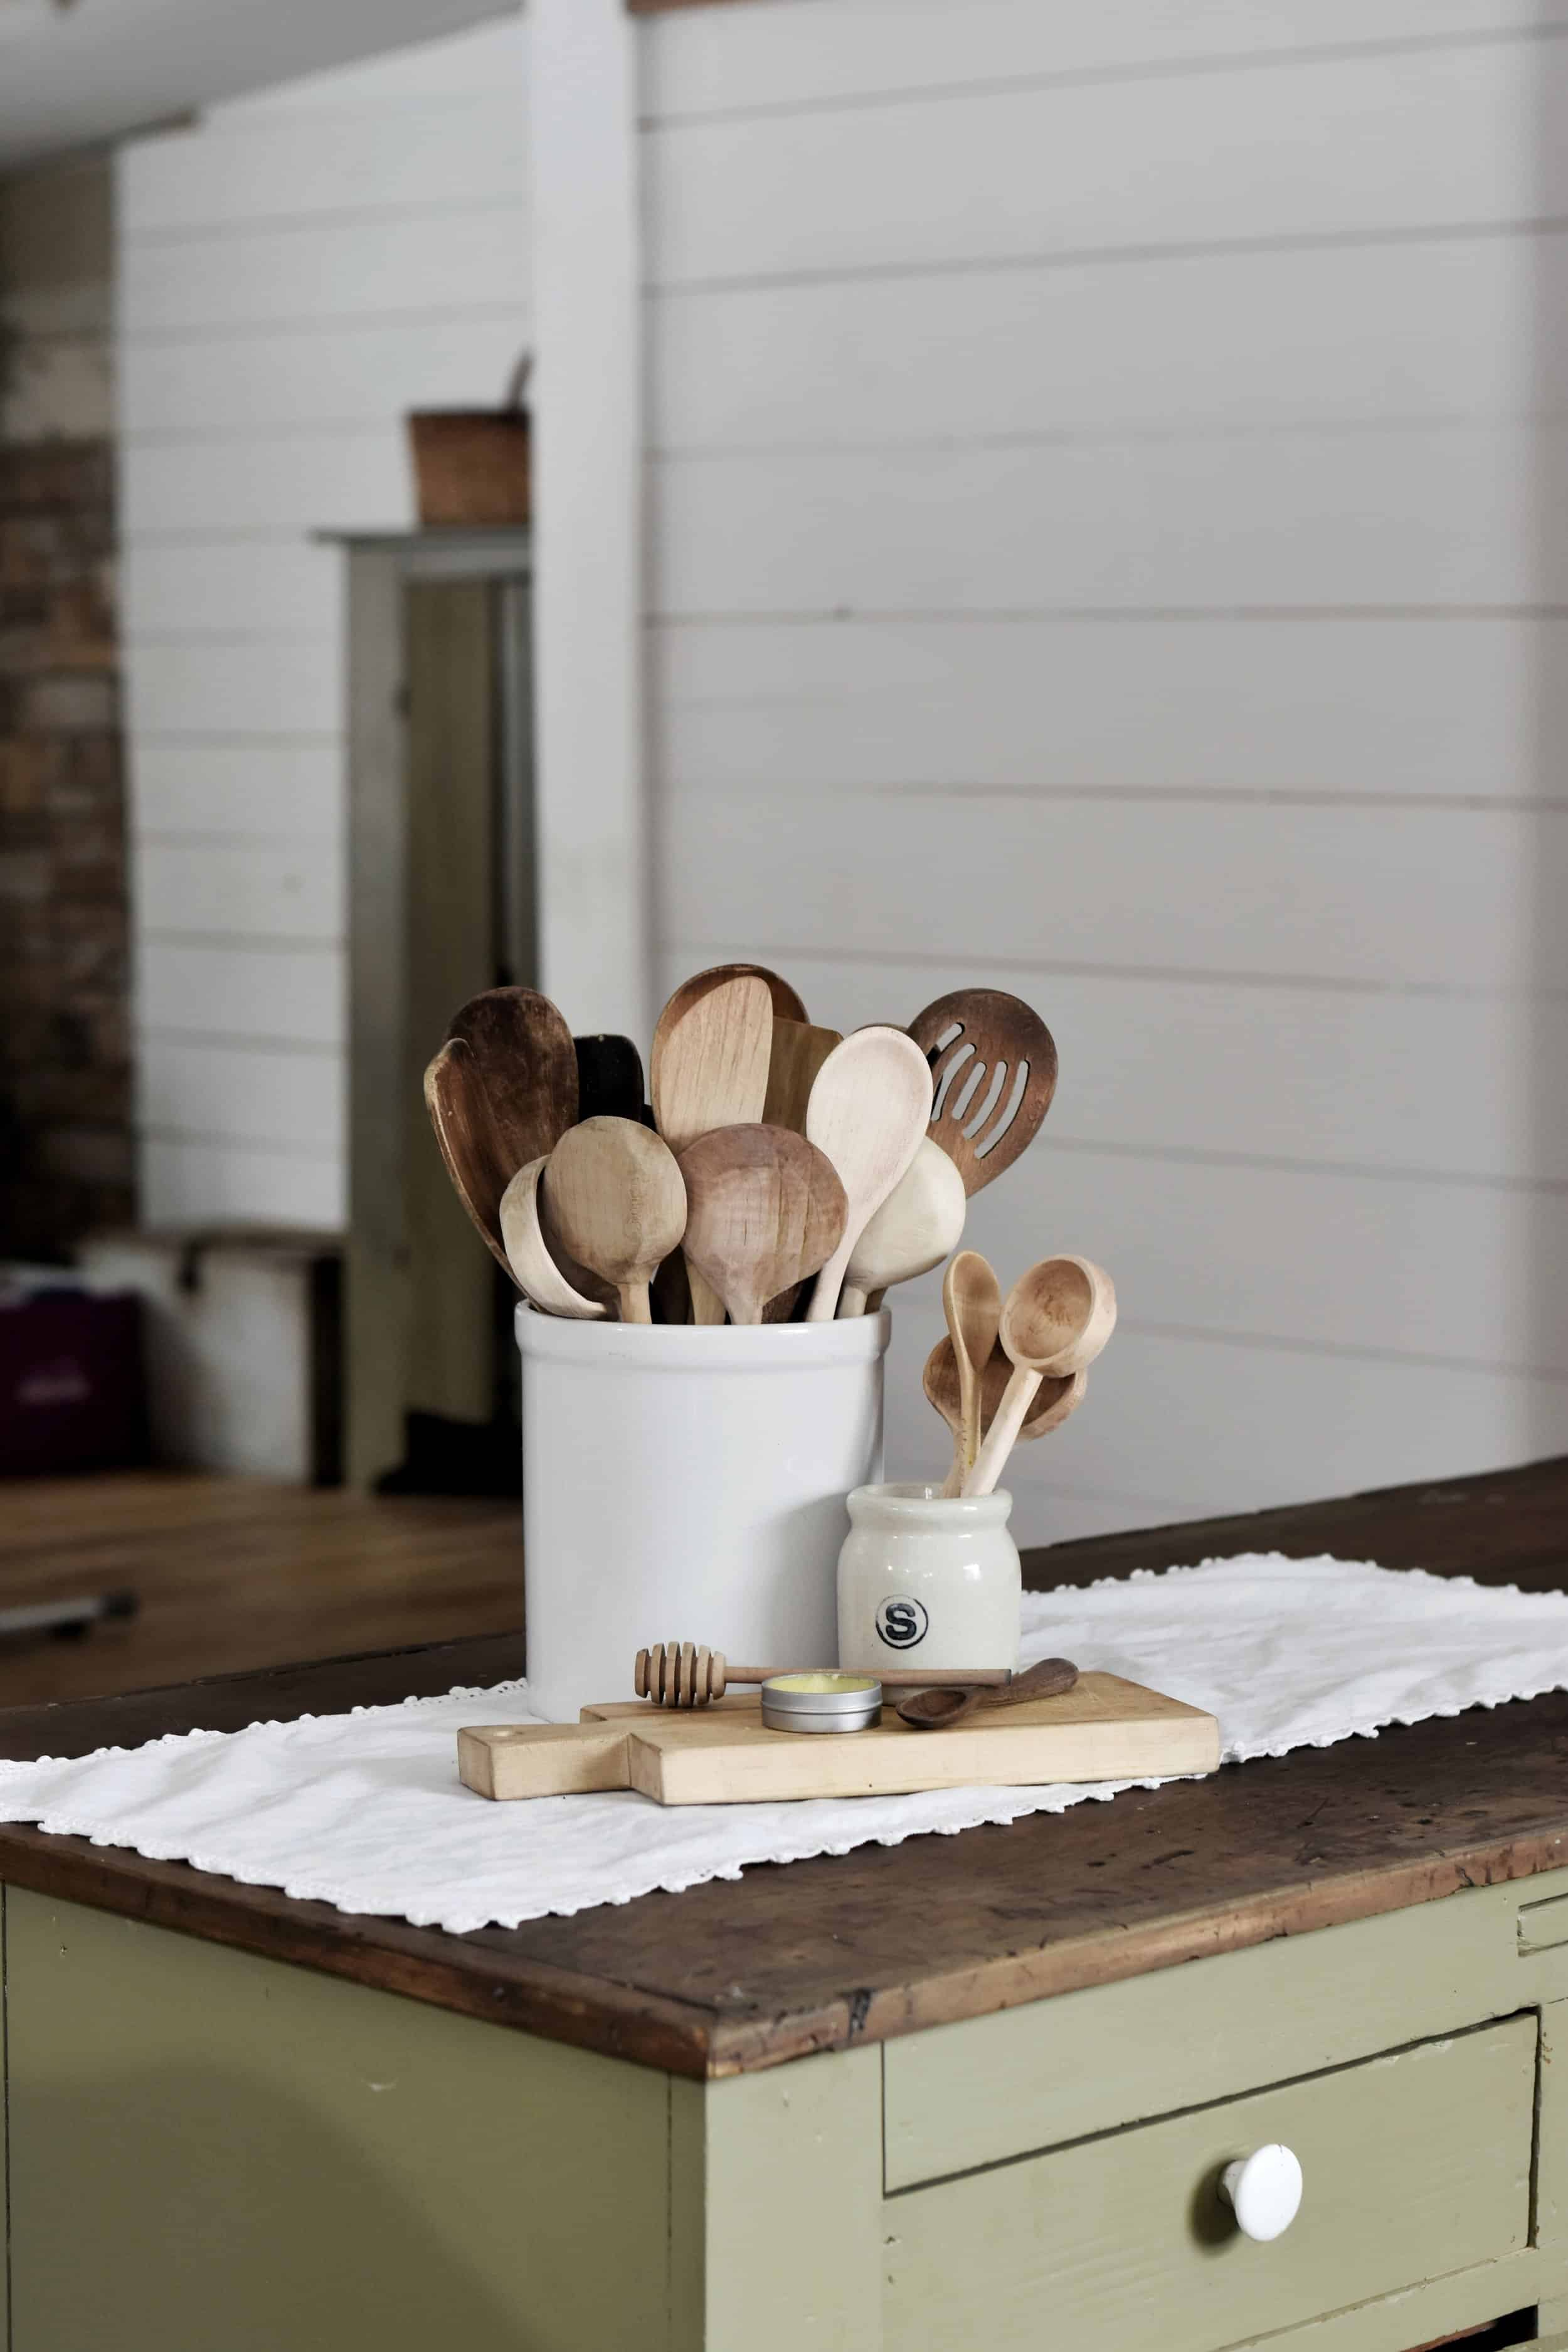 how to properly care for wooden spoons and utensils